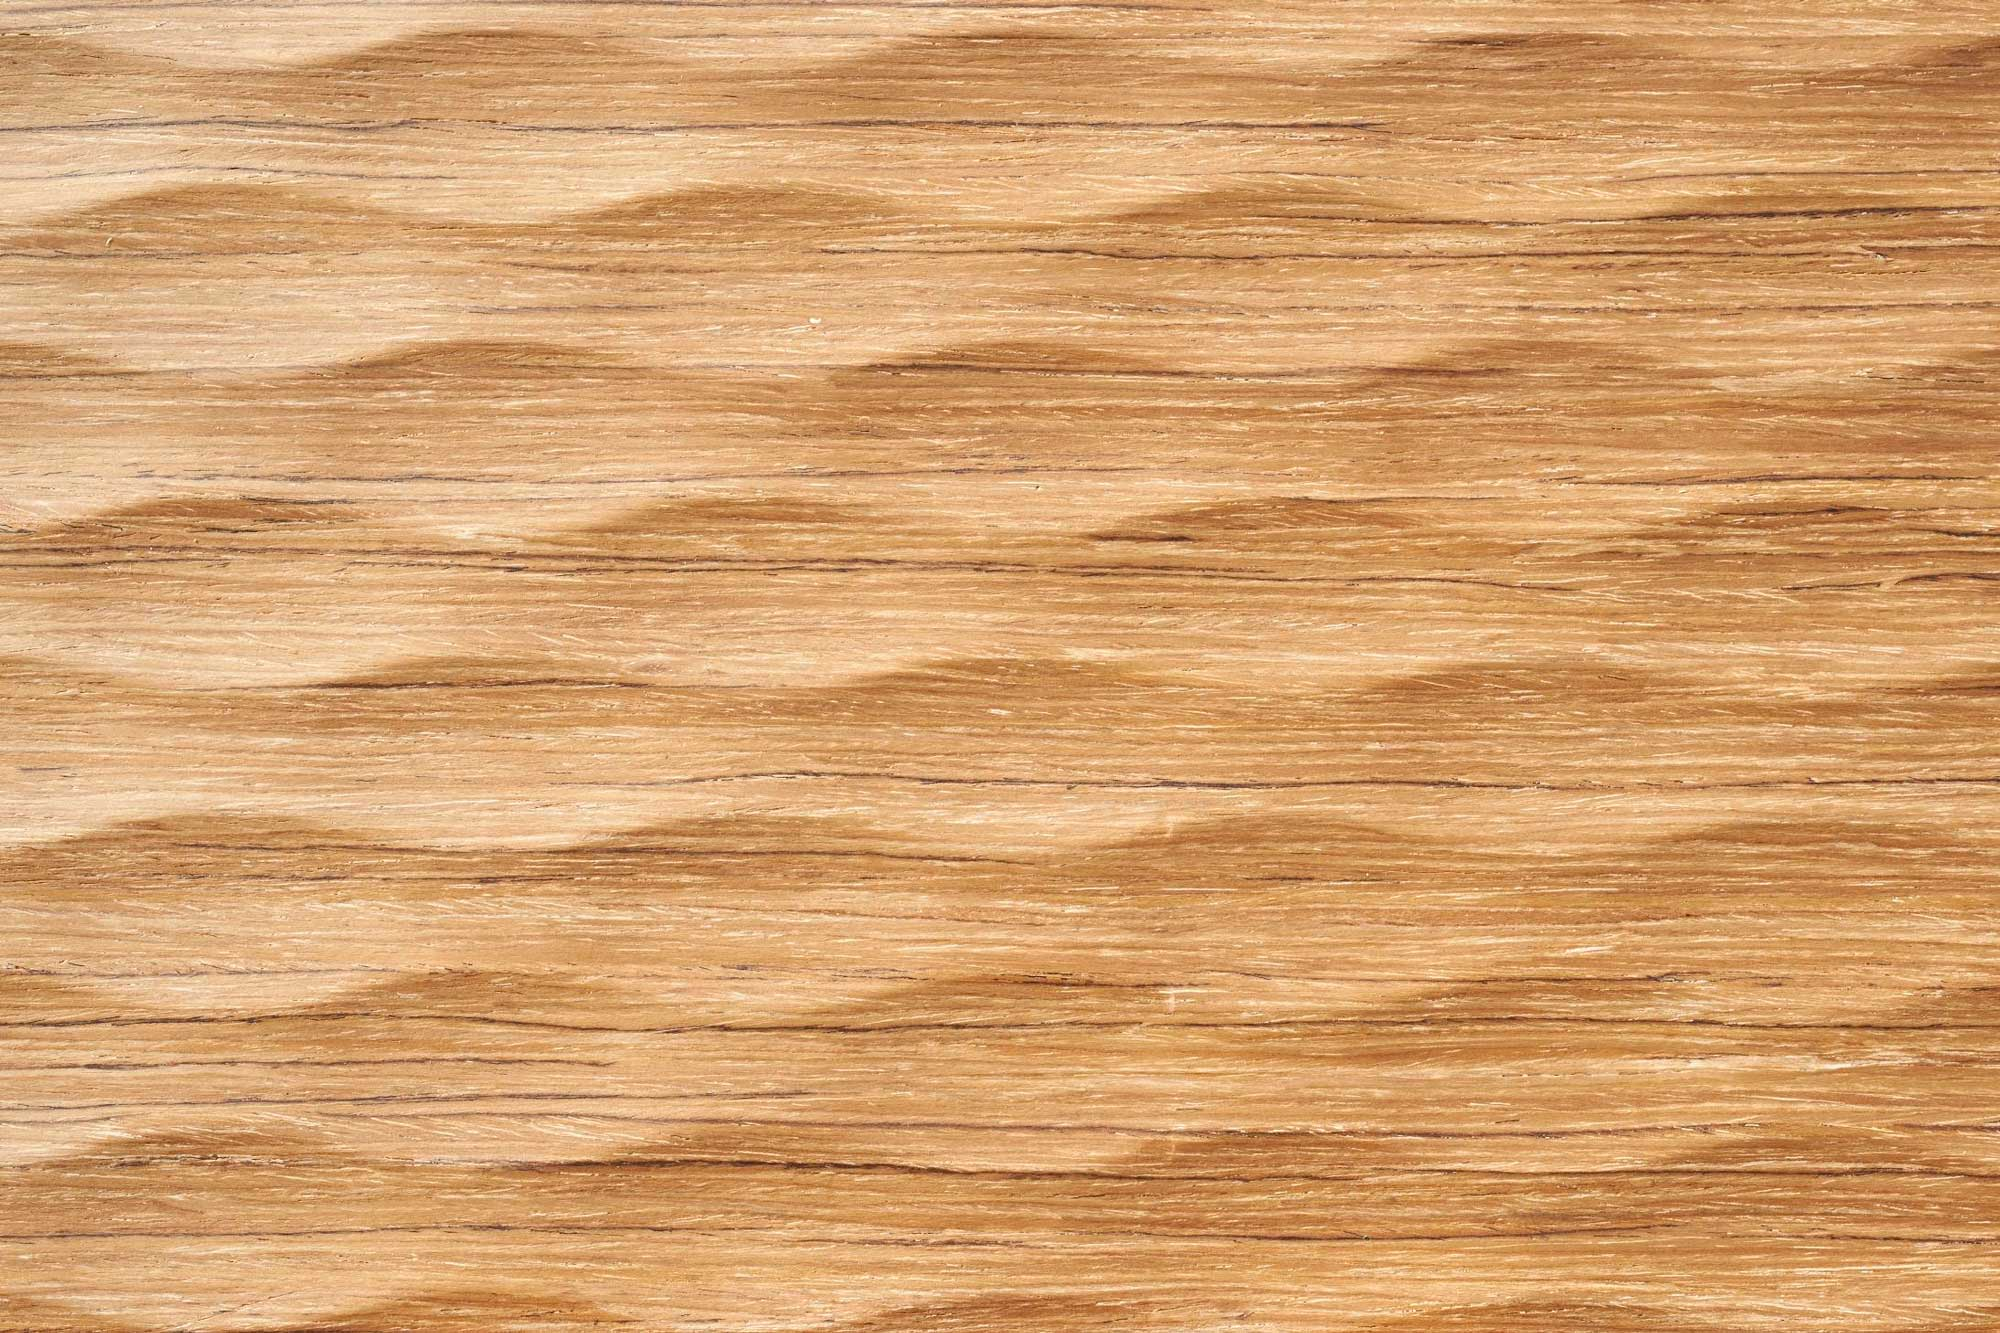 Wandpaneele holz furnuer teak teakwelle material id for Wandpaneele holz